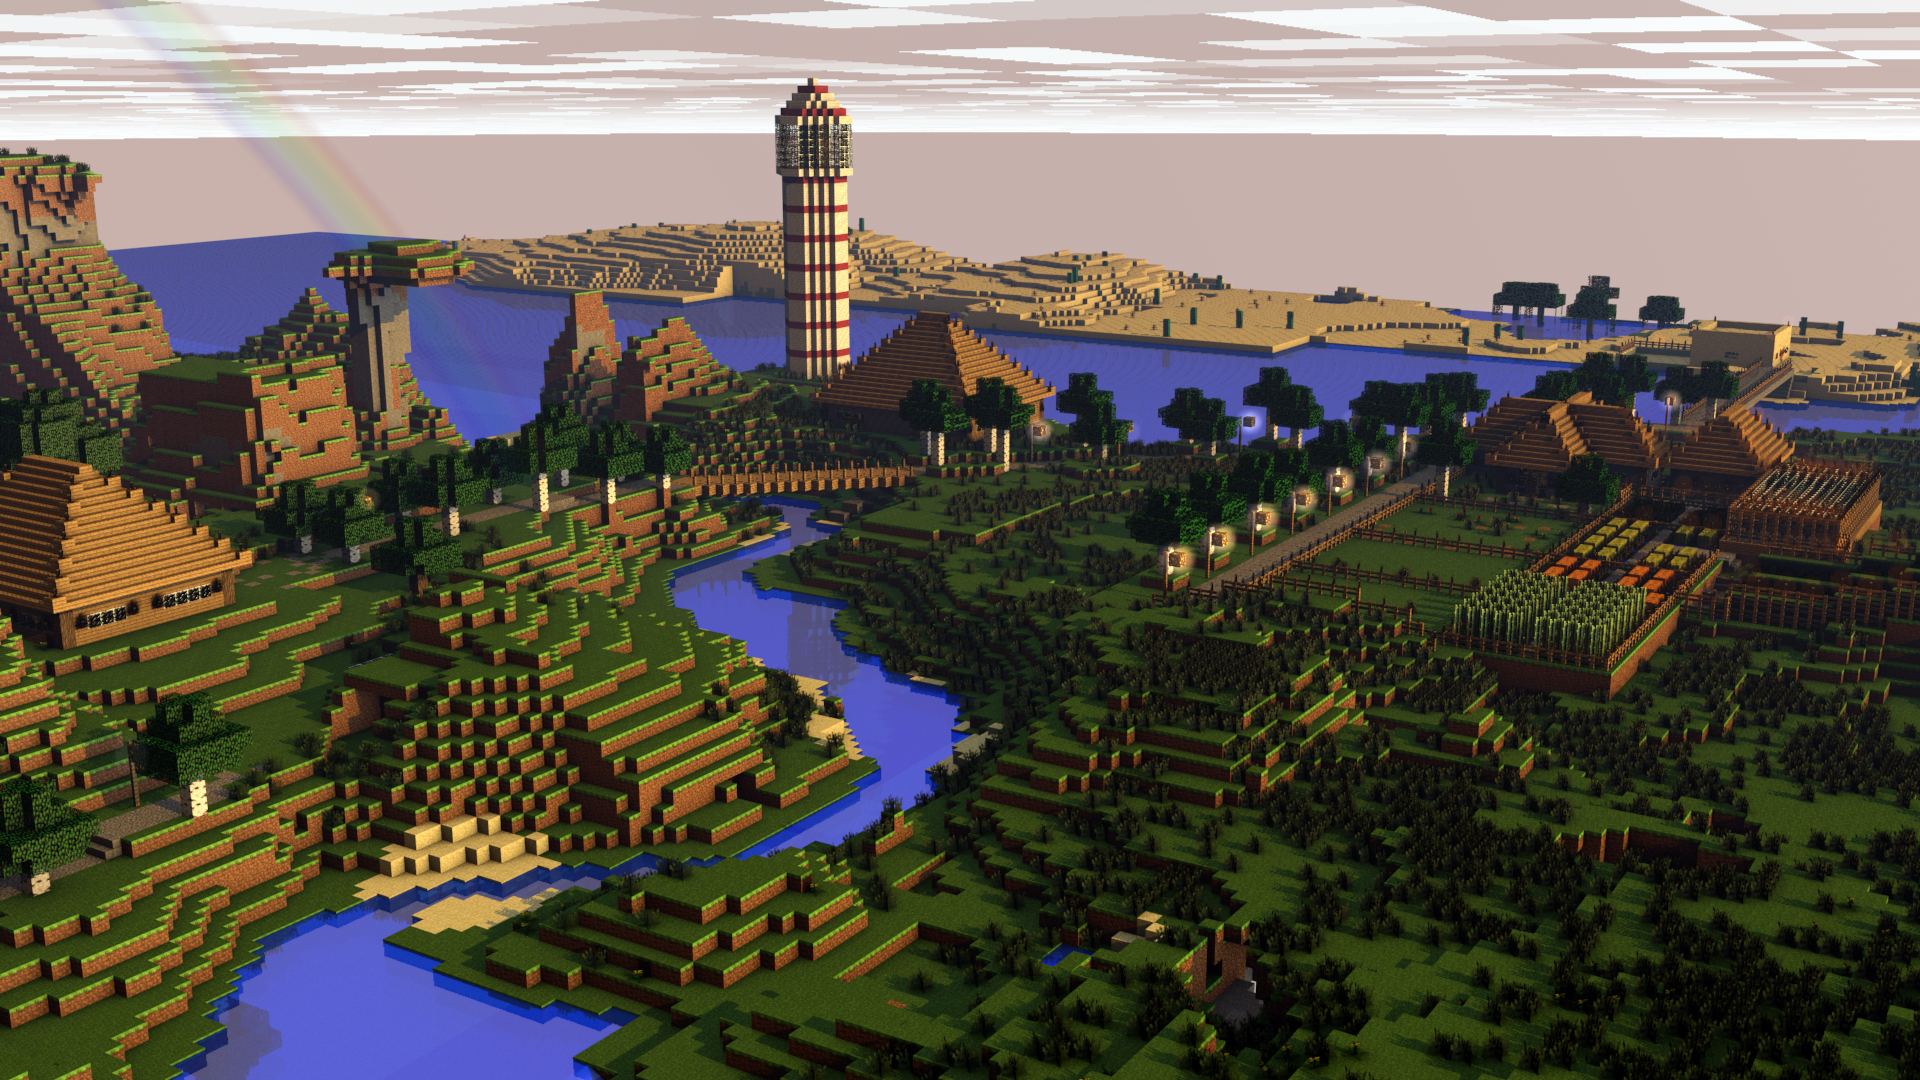 minecraft 1920x1200 wallpaper high - photo #15